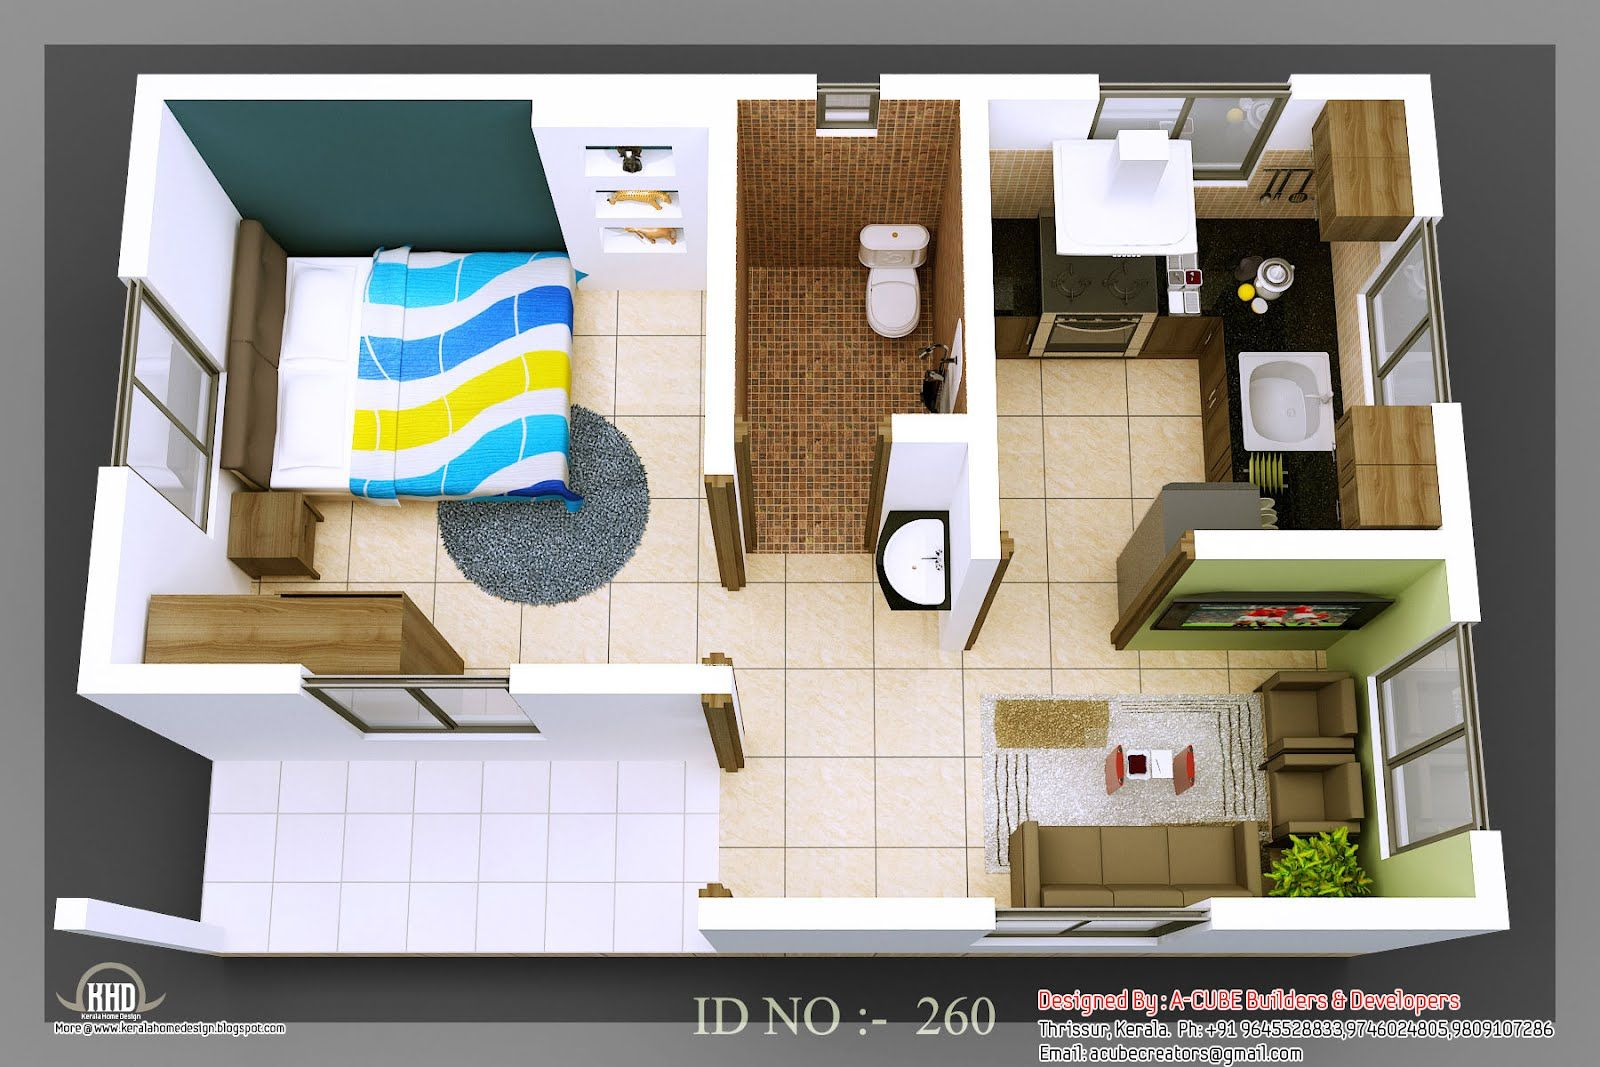 3D isometric views of small house plans in 2019 | tiny house